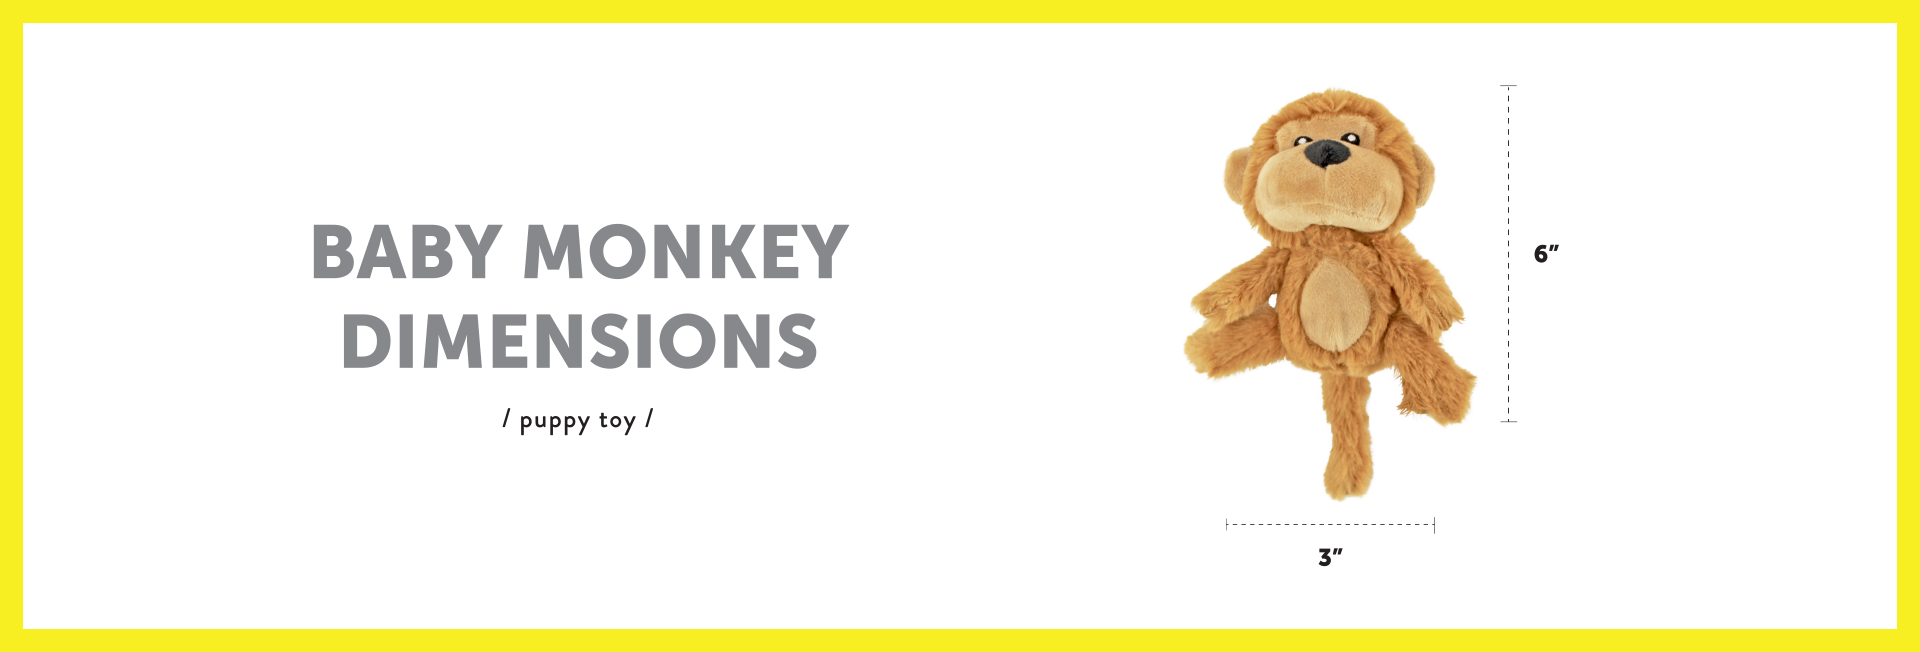 dimensions-baby-monkey-for-dogs-english